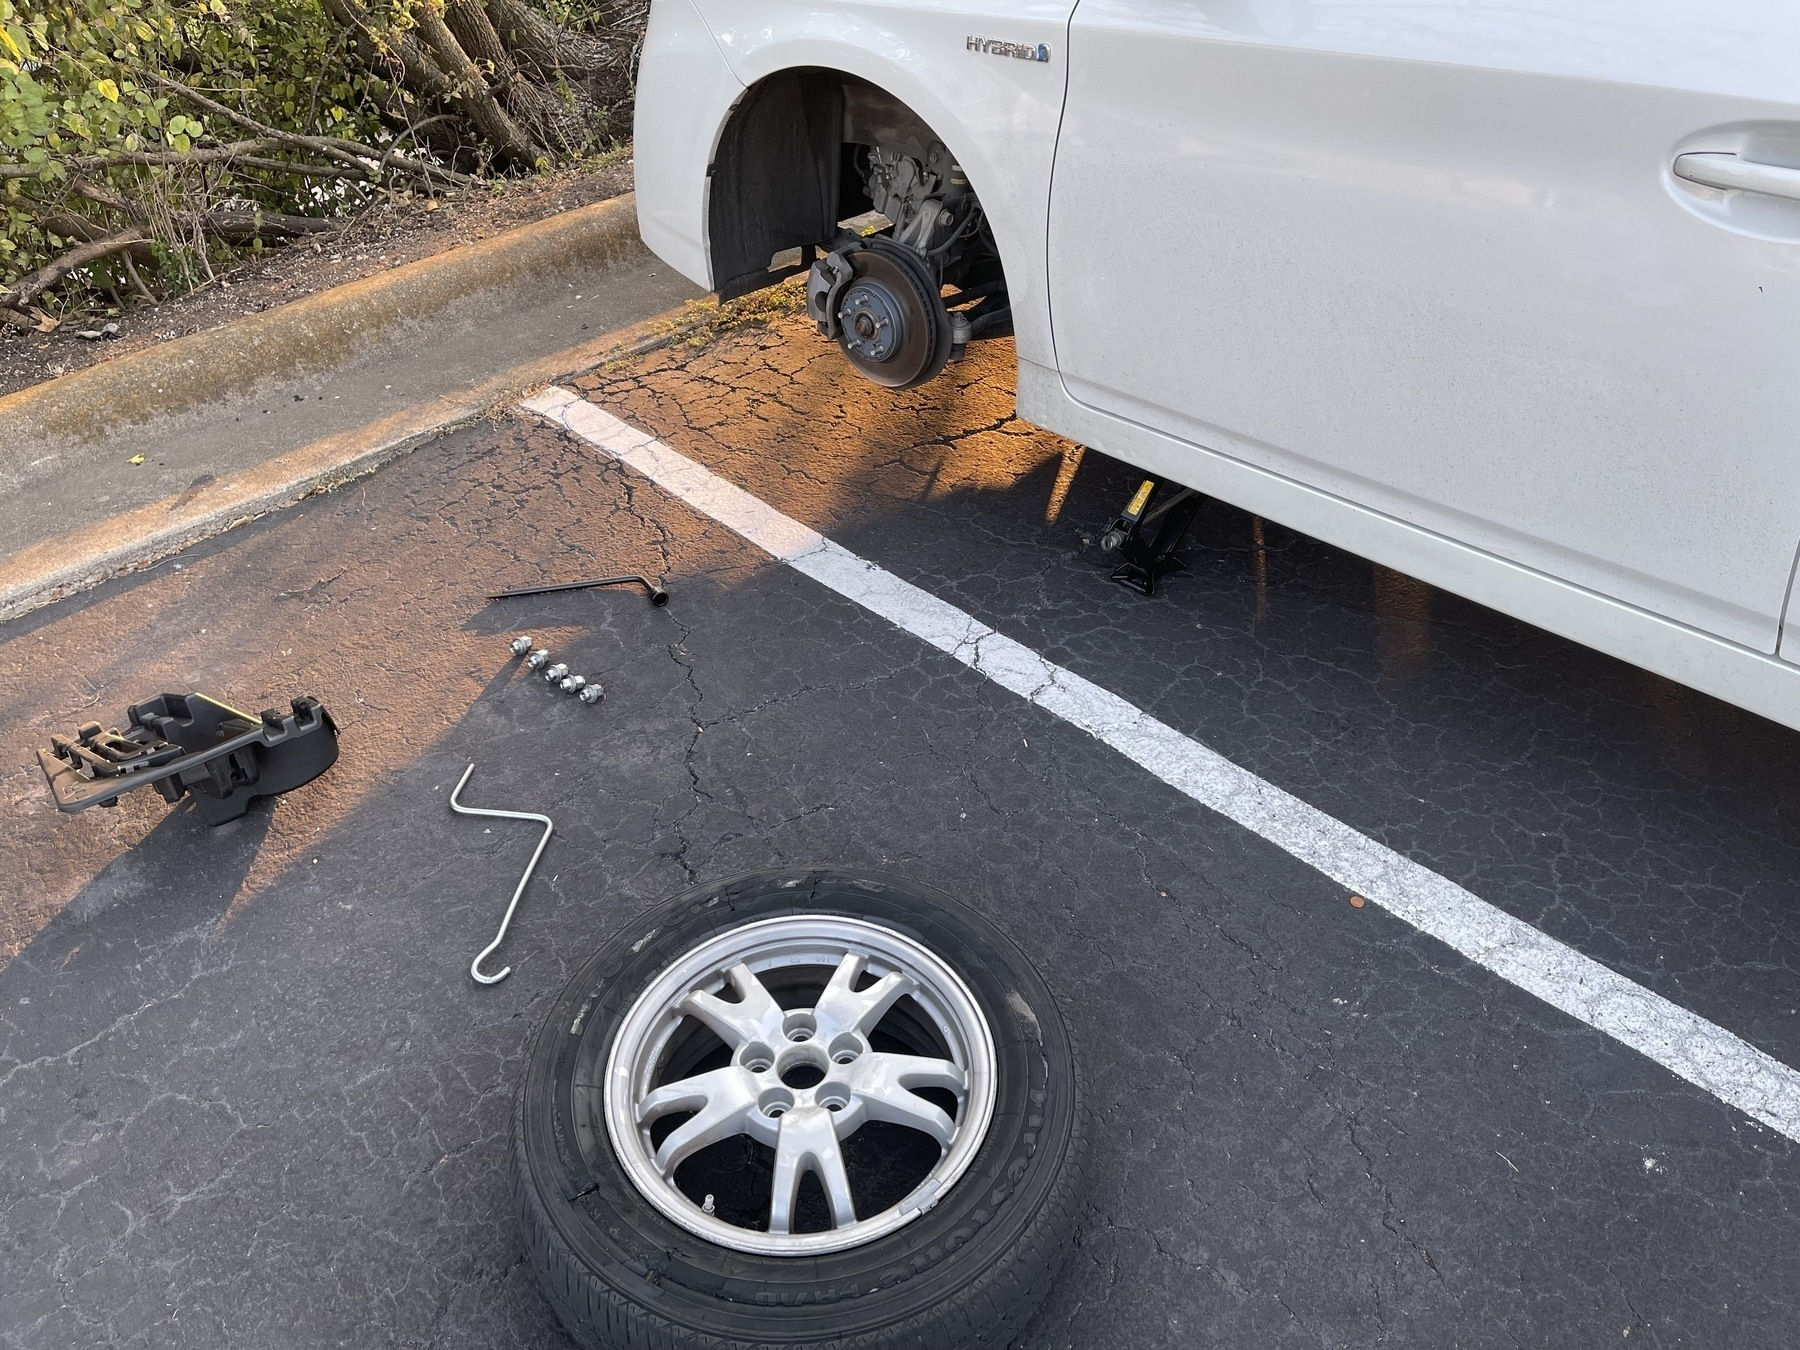 The front left side of a white Toyota Prius is shown on a jack with its tire removed. The tire is down on the next parking spot over, showing damage. Various tools are next to the tire on the ground.